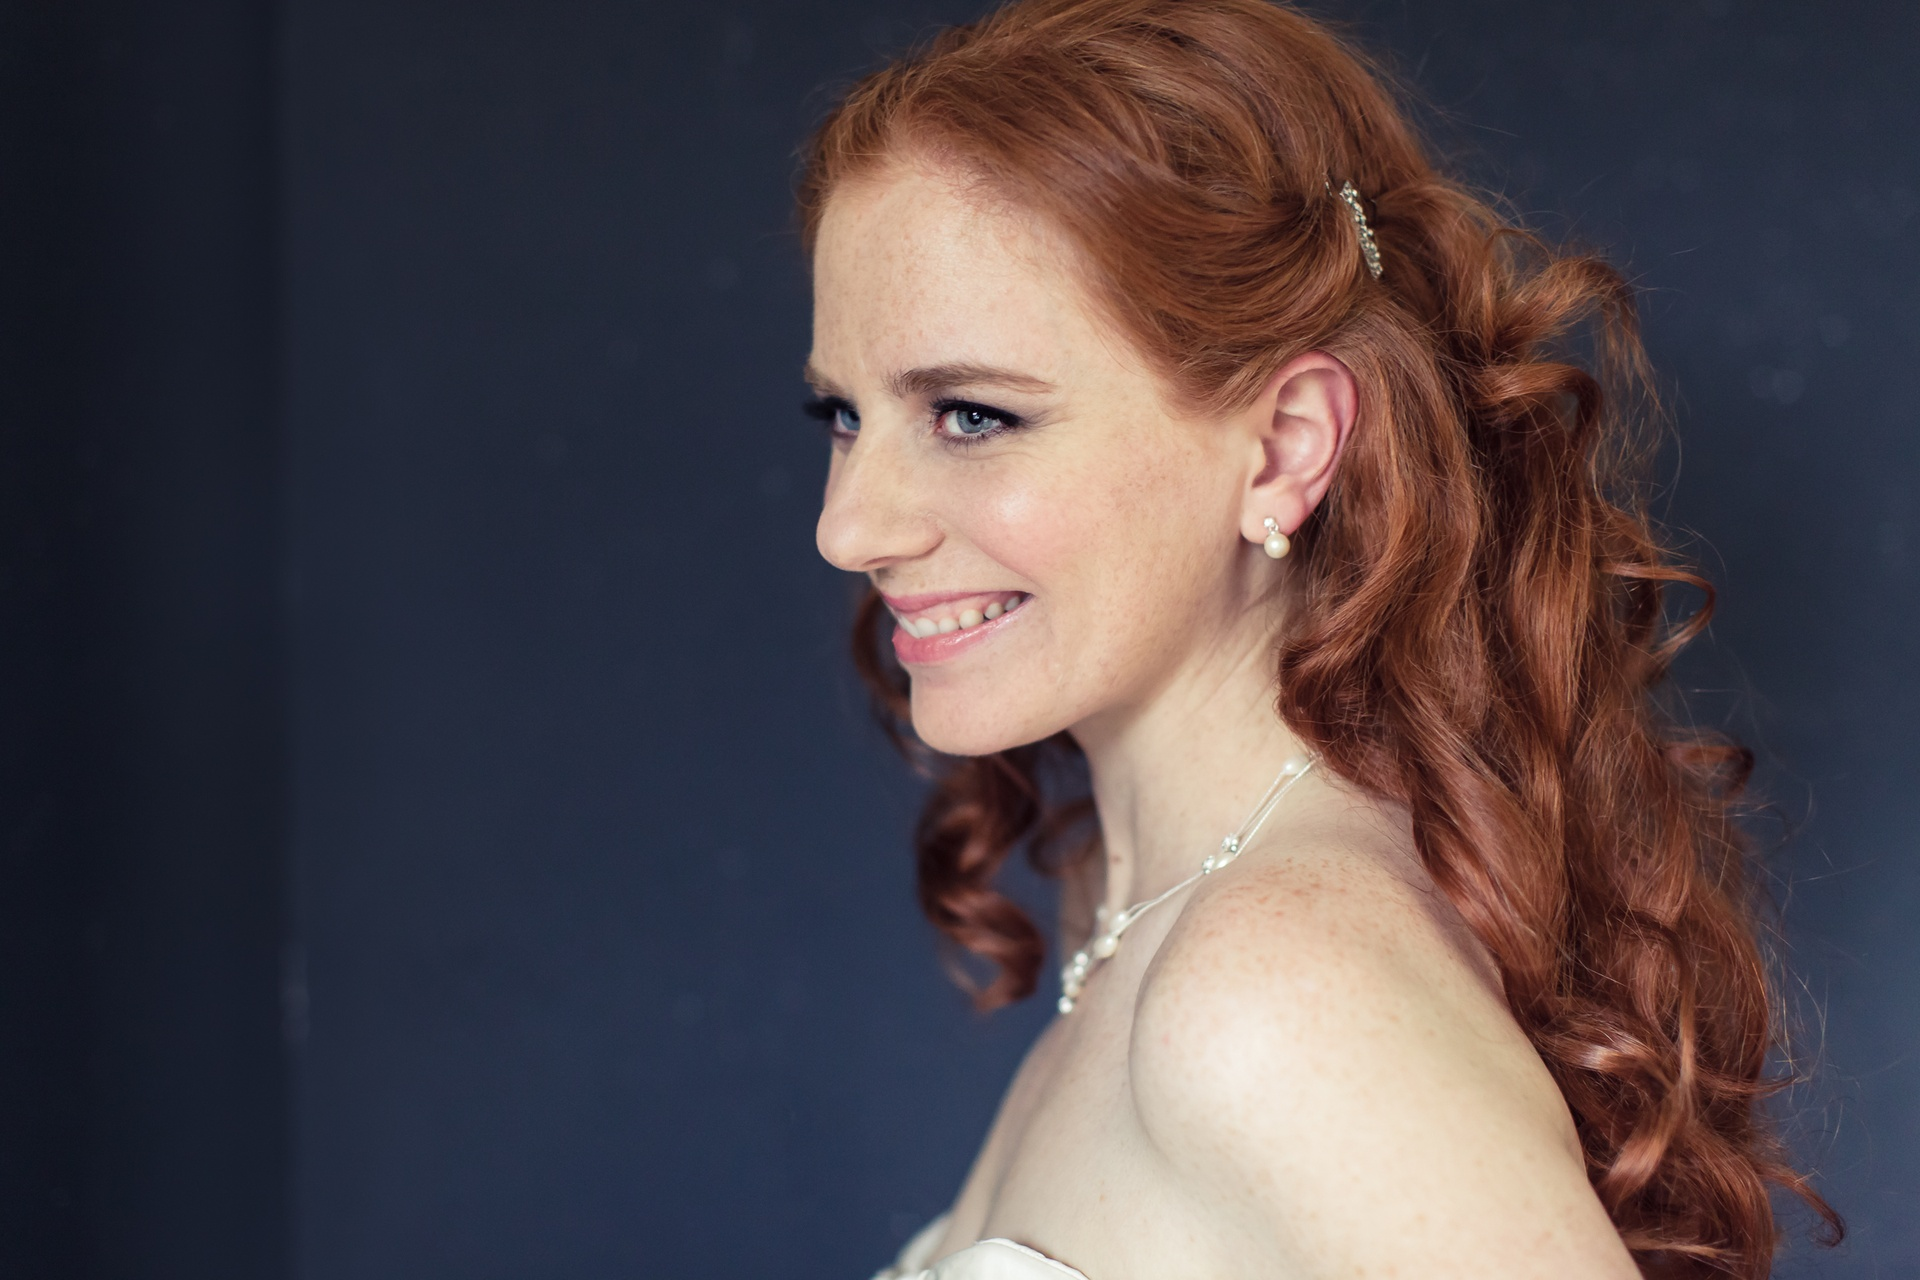 ALL INCLUSIVEBRIDAL PACKAGEMakeup and hair$500 - with trial